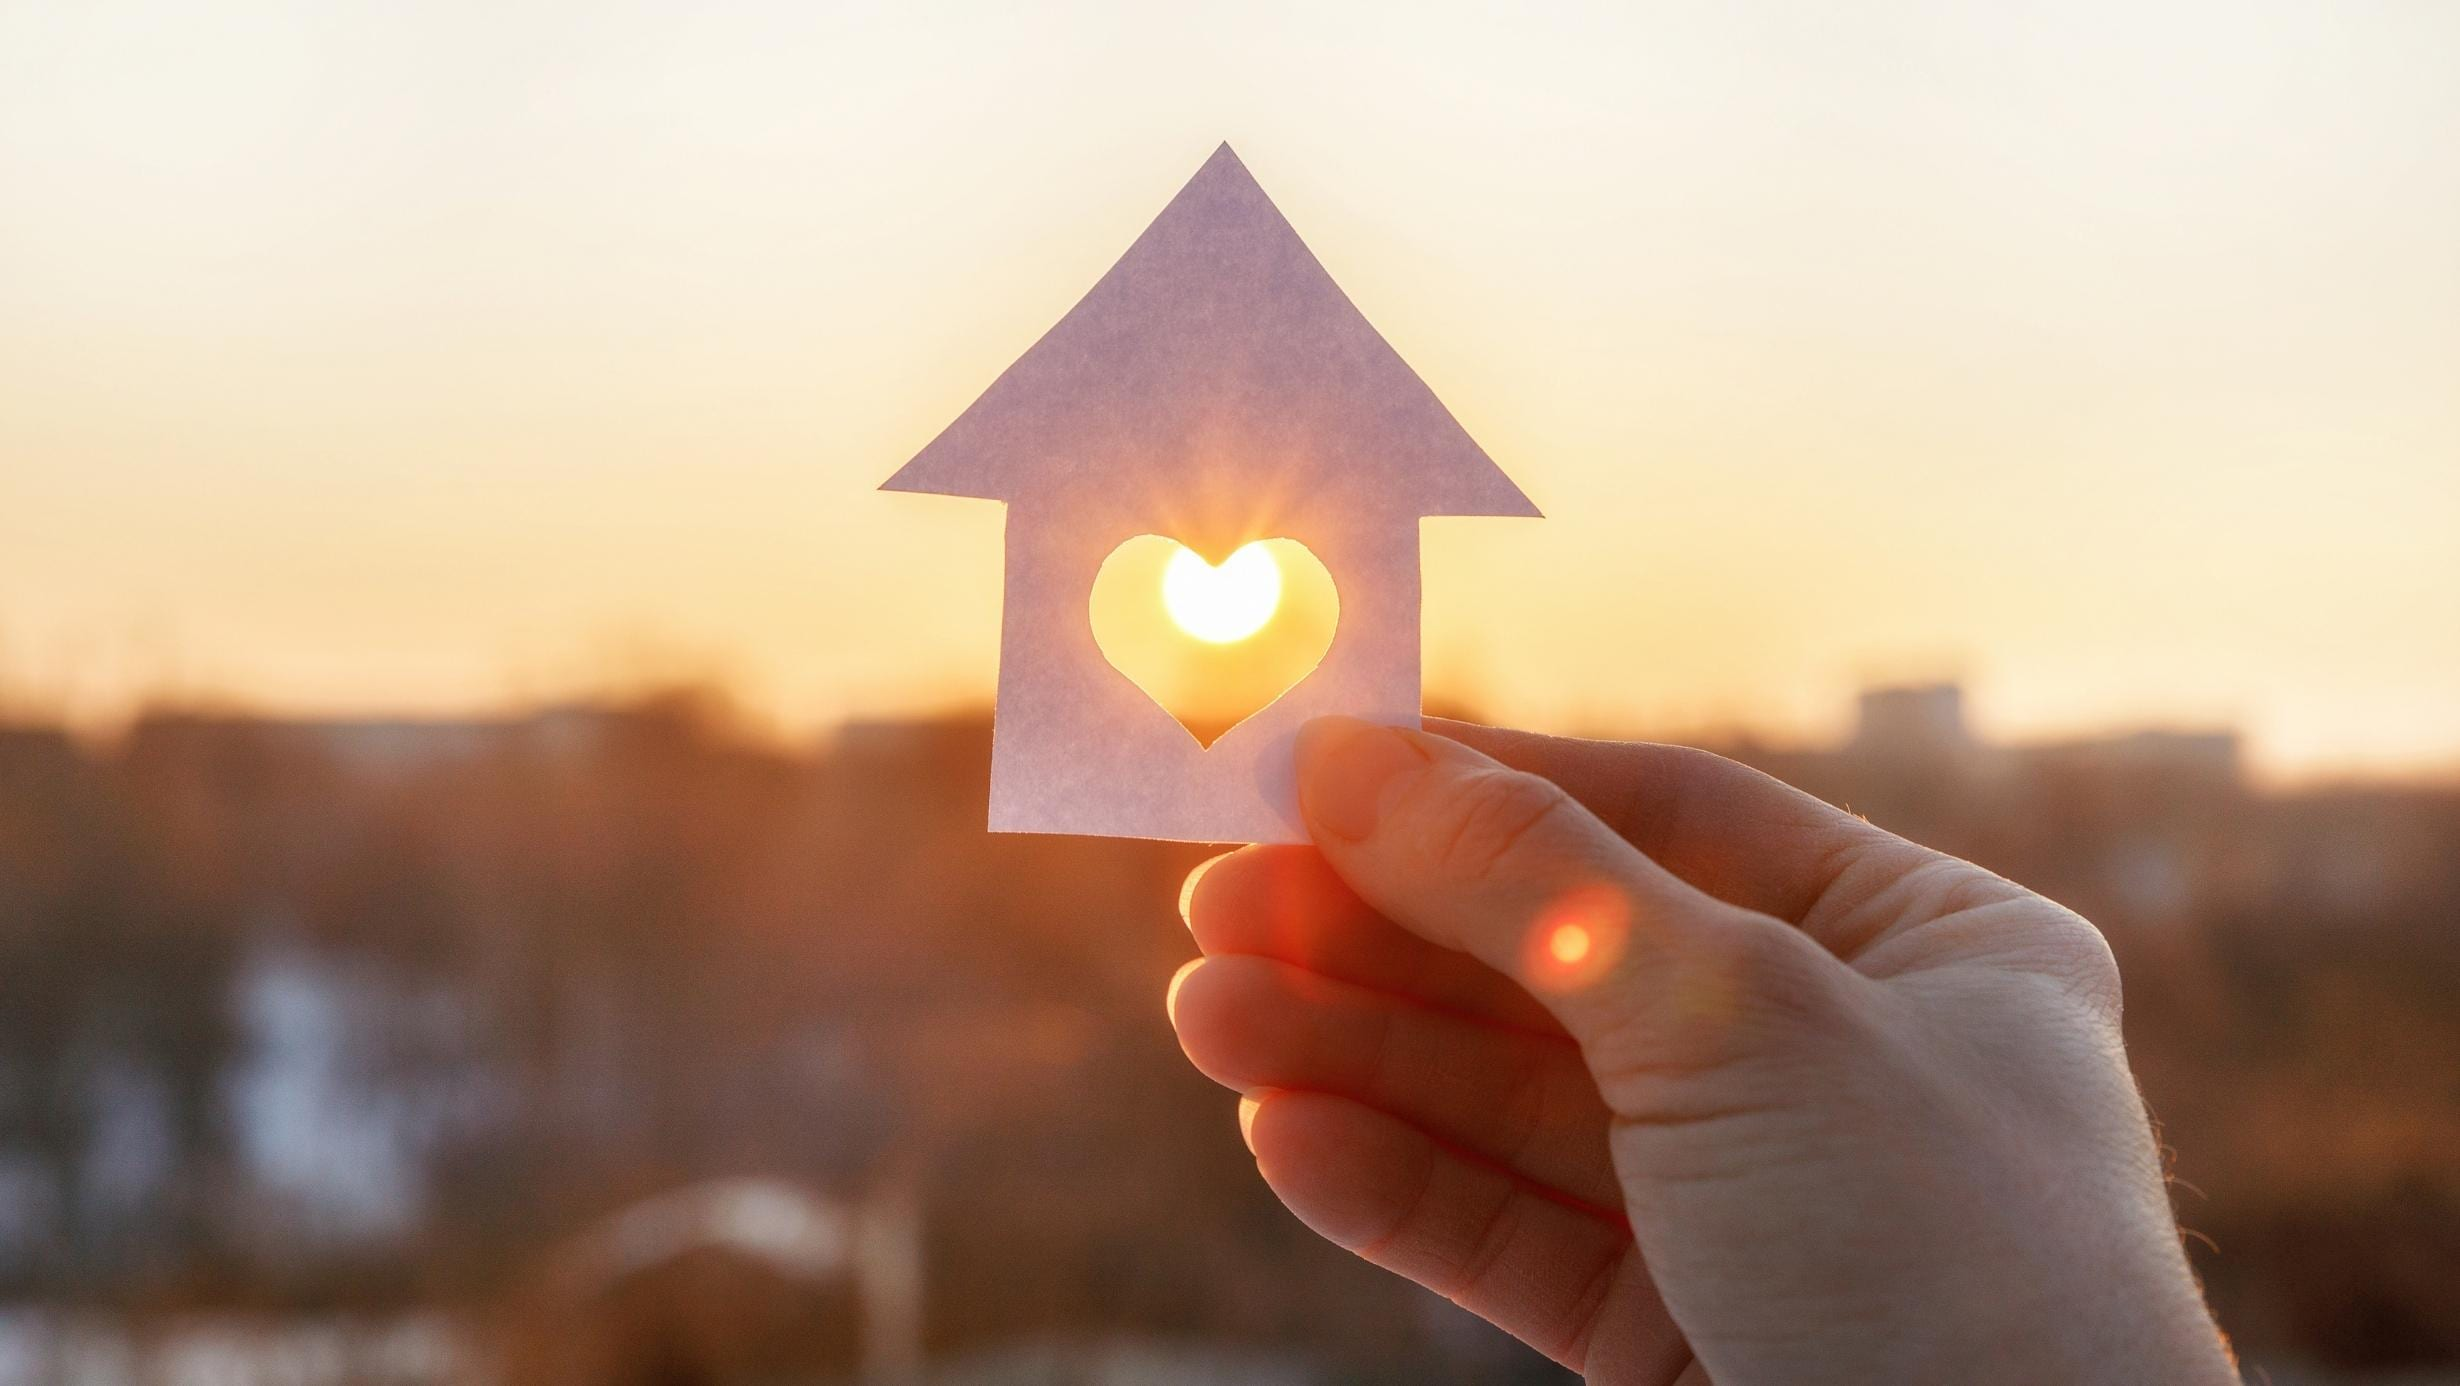 7 Ways To Make Your Home Healthy And Energy Efficient